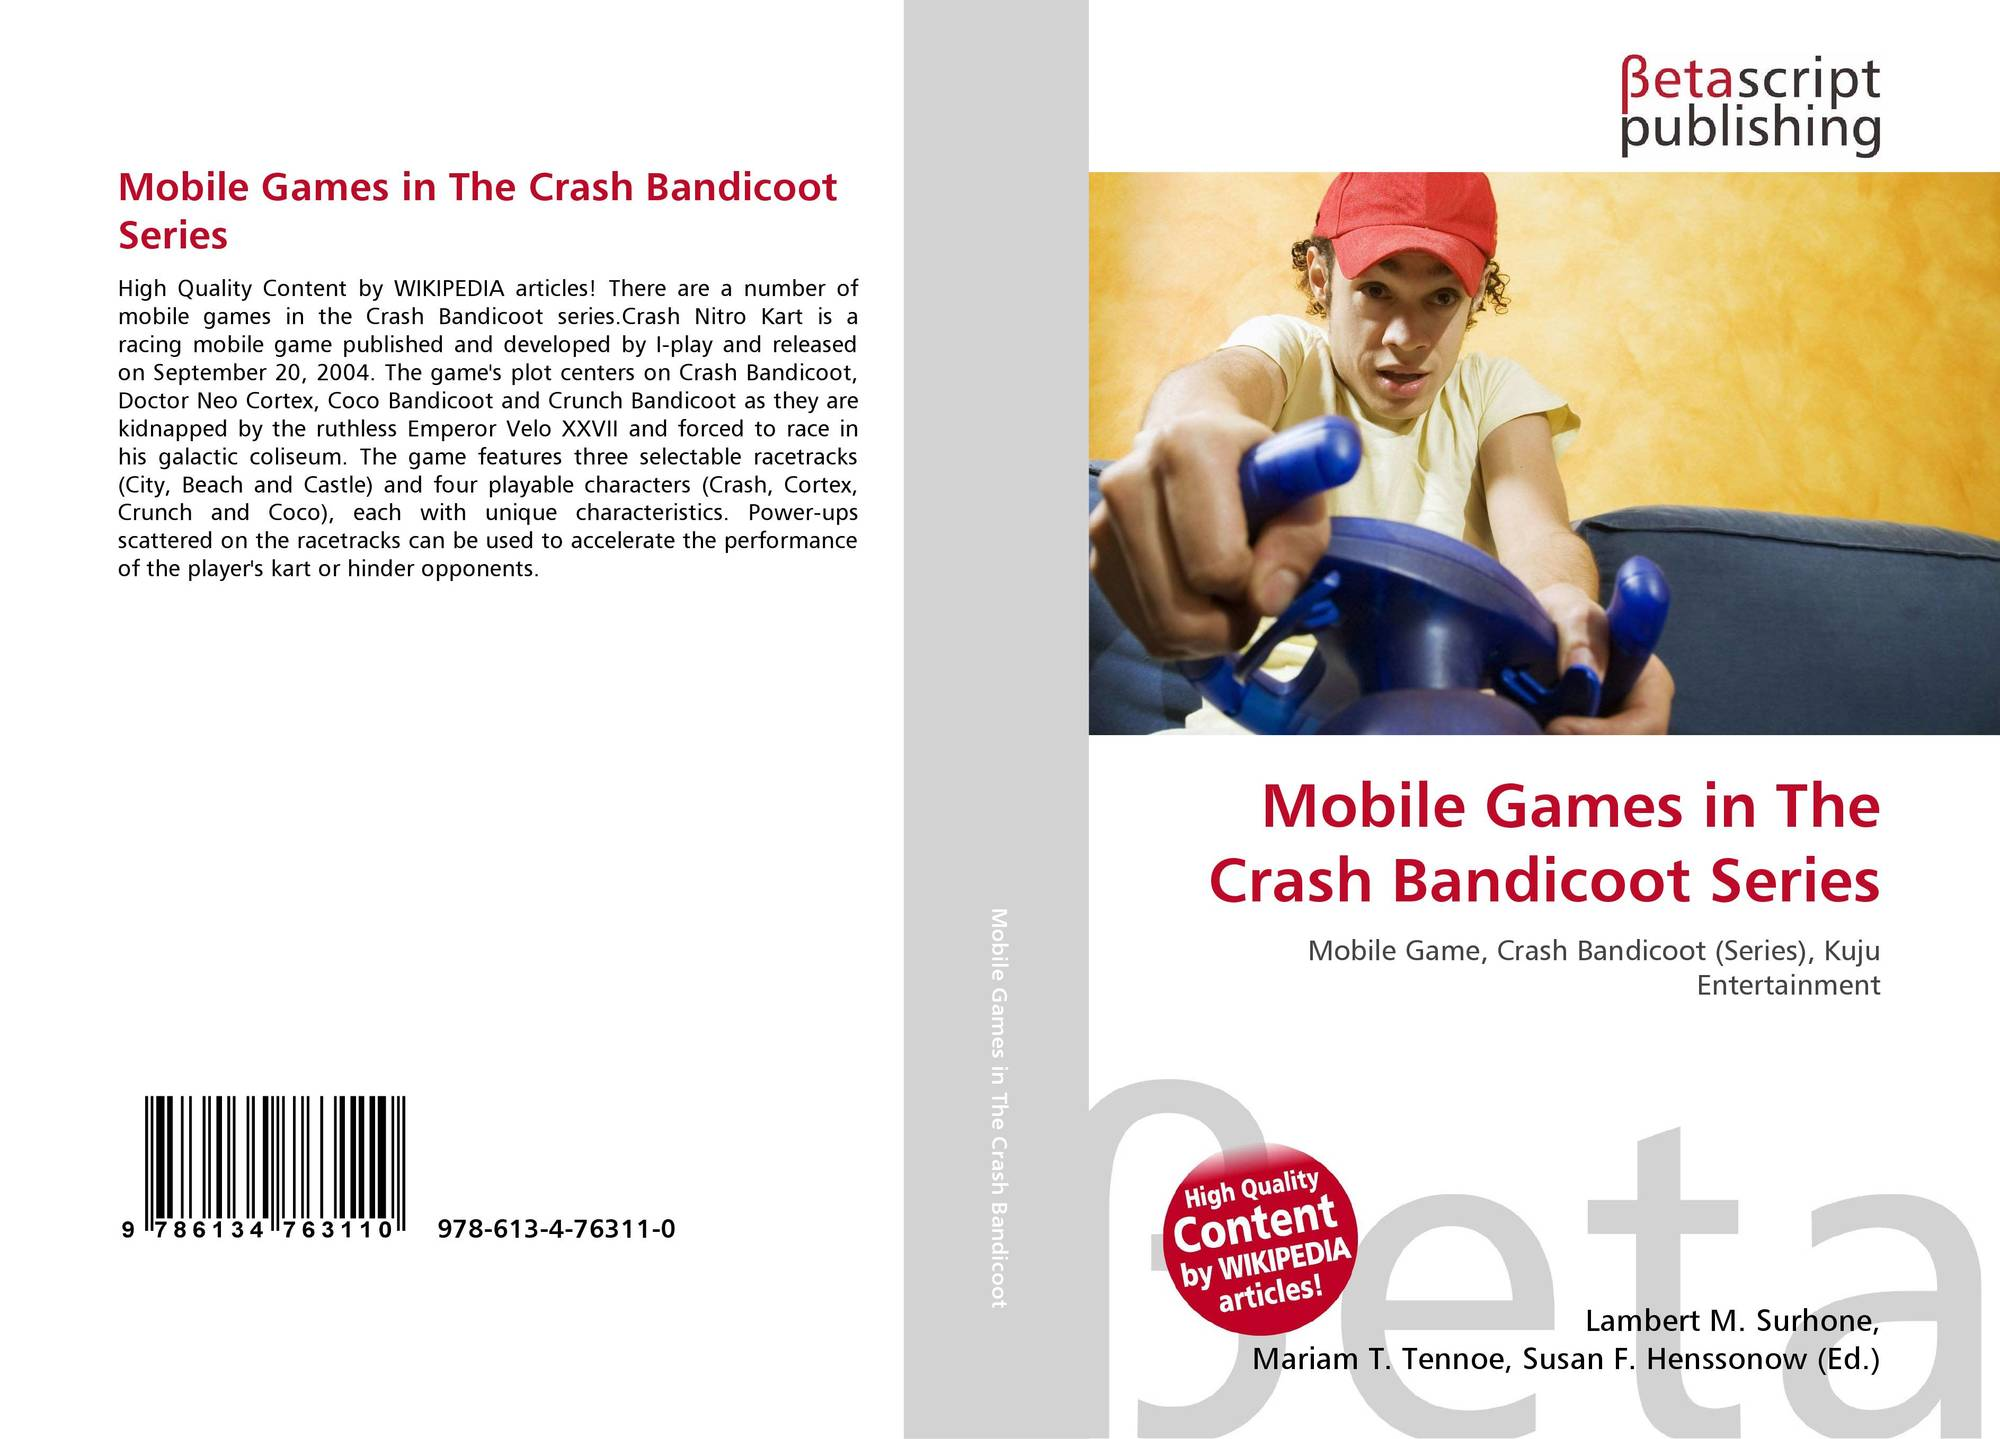 Mobile Games in The Crash Bandicoot Series, 978-613-4-76311